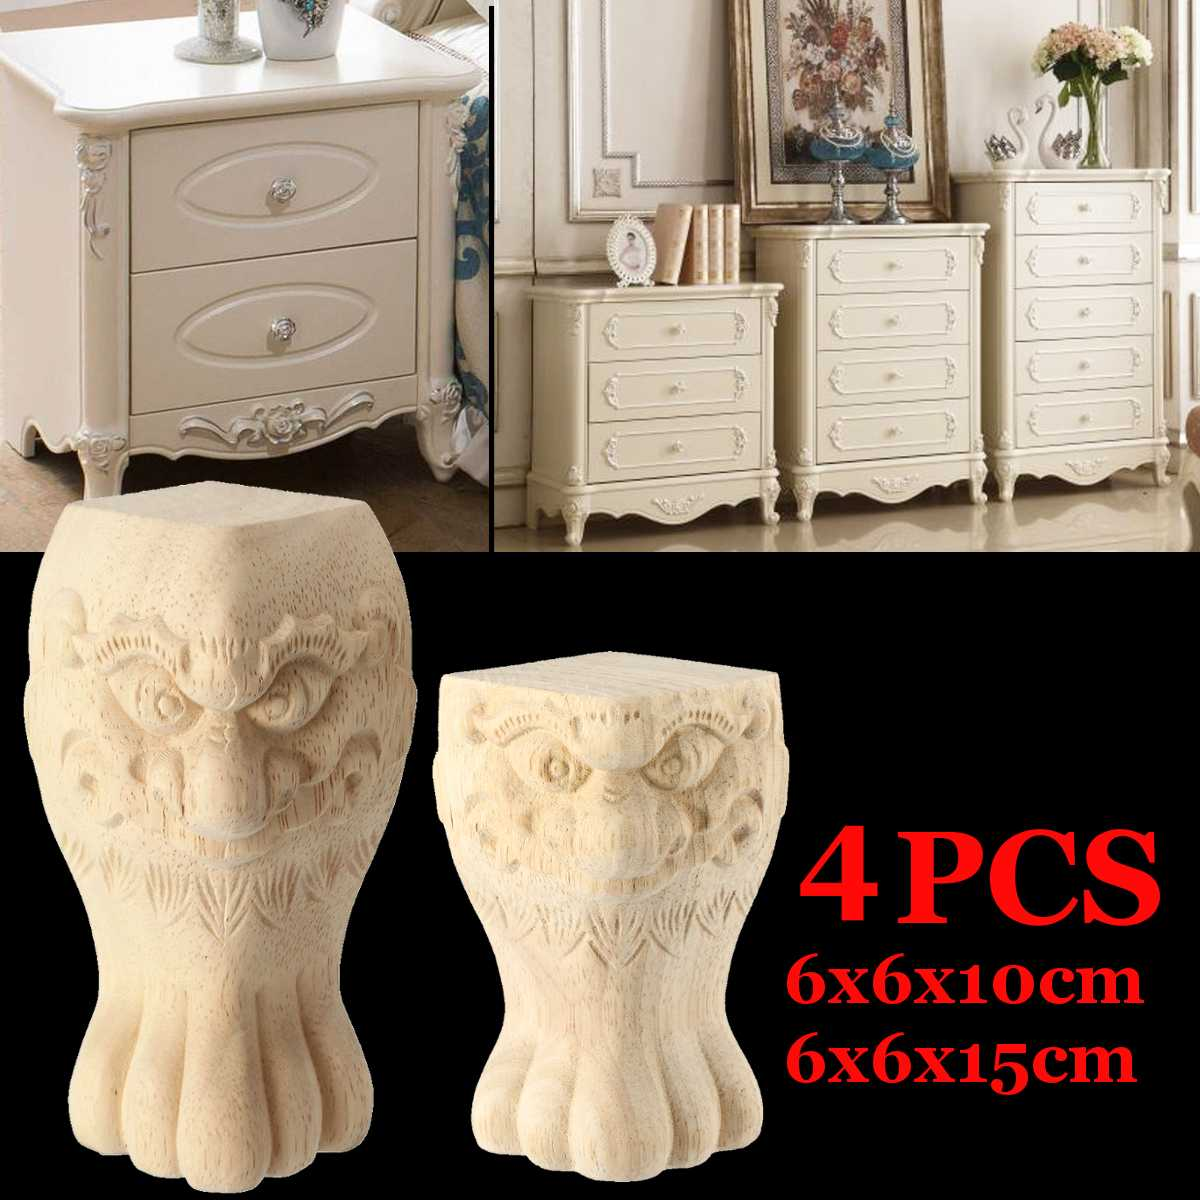 4Pcs 10/15cm European Carved Furniture Legs Foot Wood TV Cabinet Seat Foot Bathroom Cabinet Legs